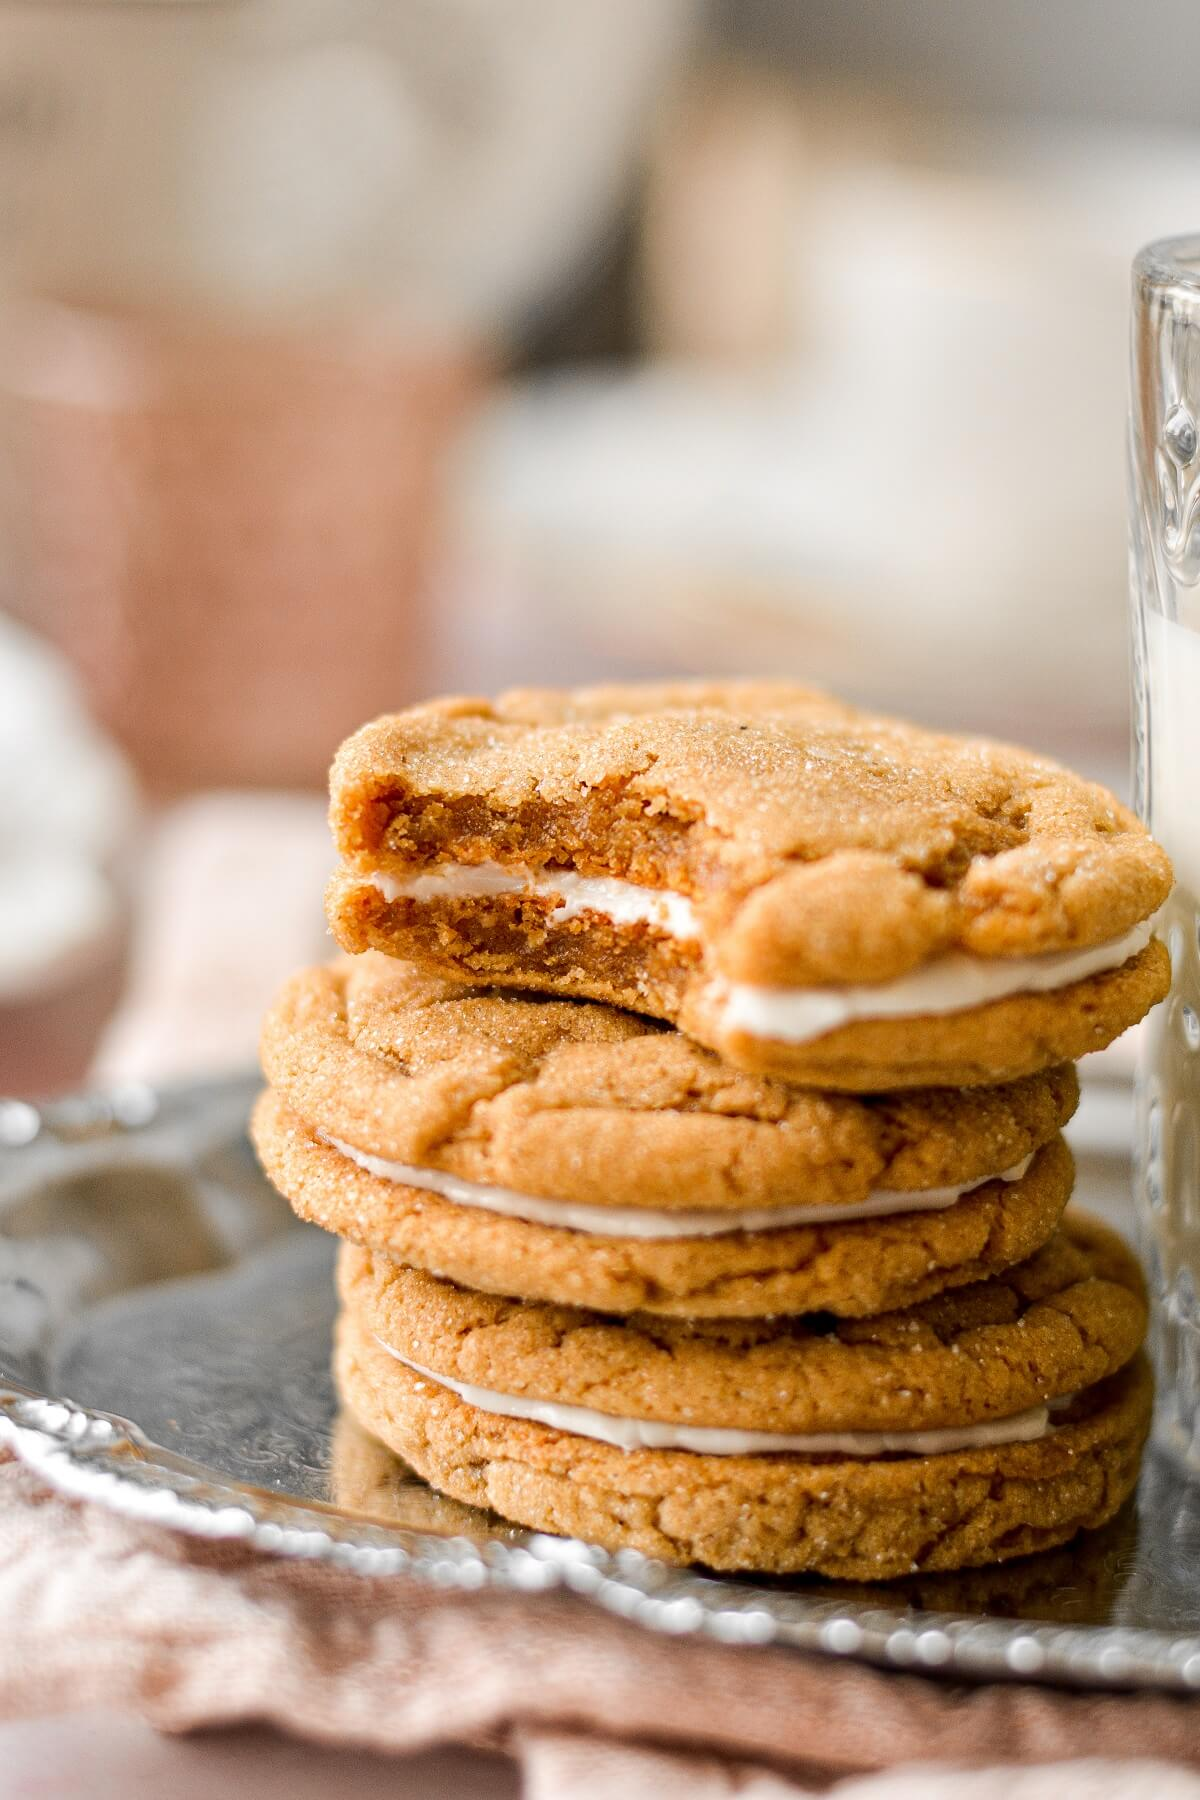 Soft ginger molasses cookies, one with a bite taken.